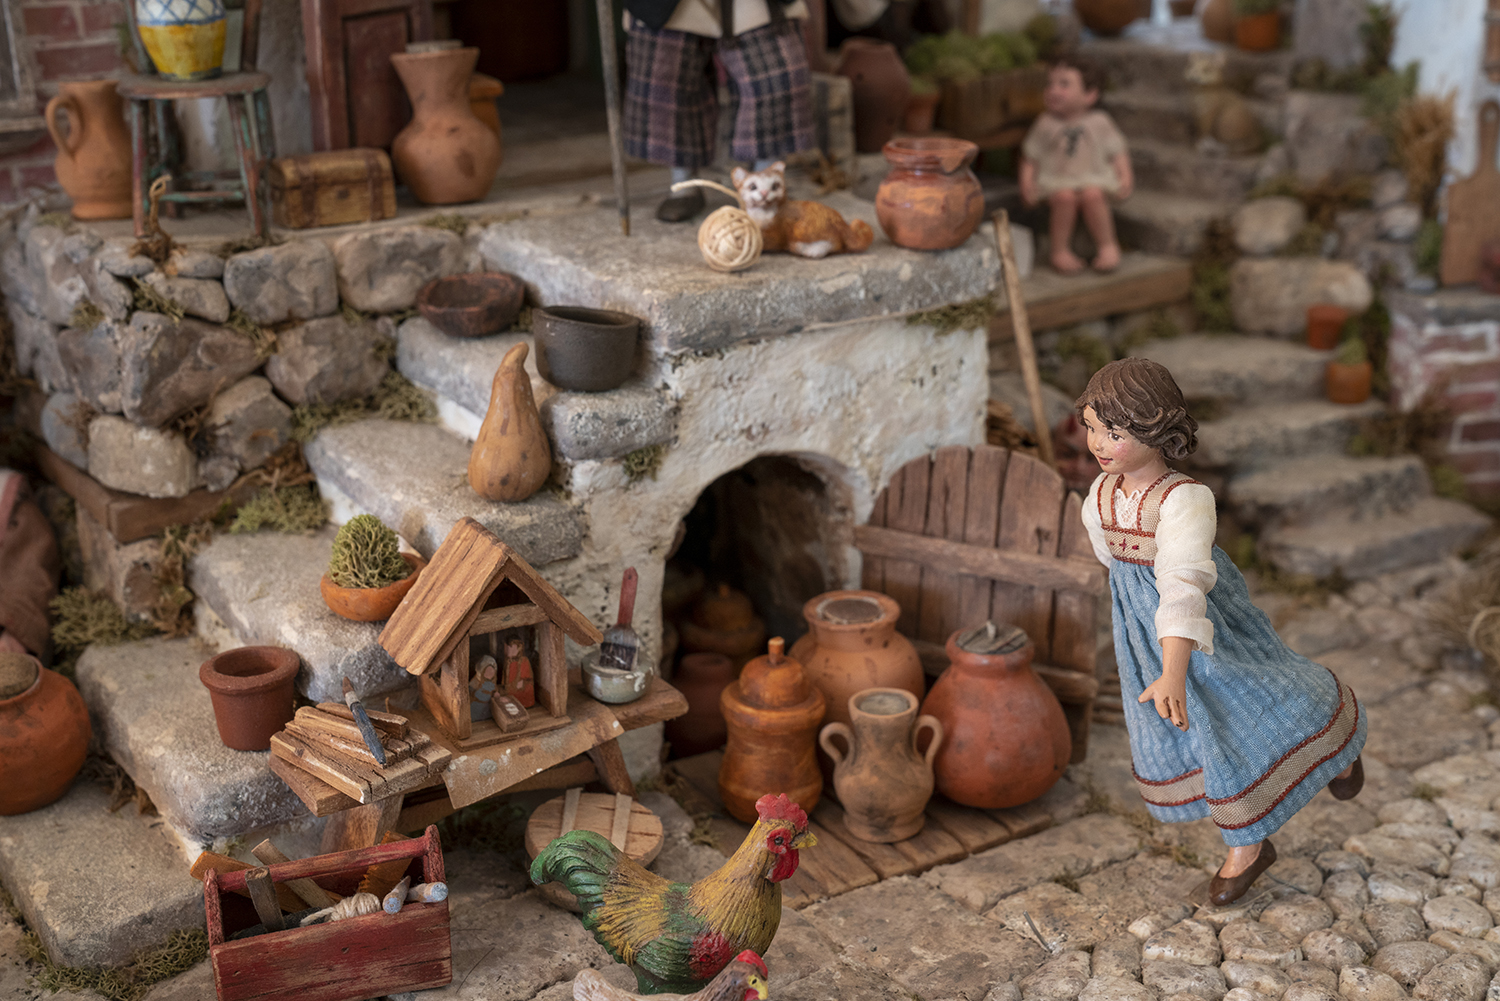 Figure 13: A young girl runs through her Italian village; a figure by Karen Loccisano. Note the small Nativity on the bench.